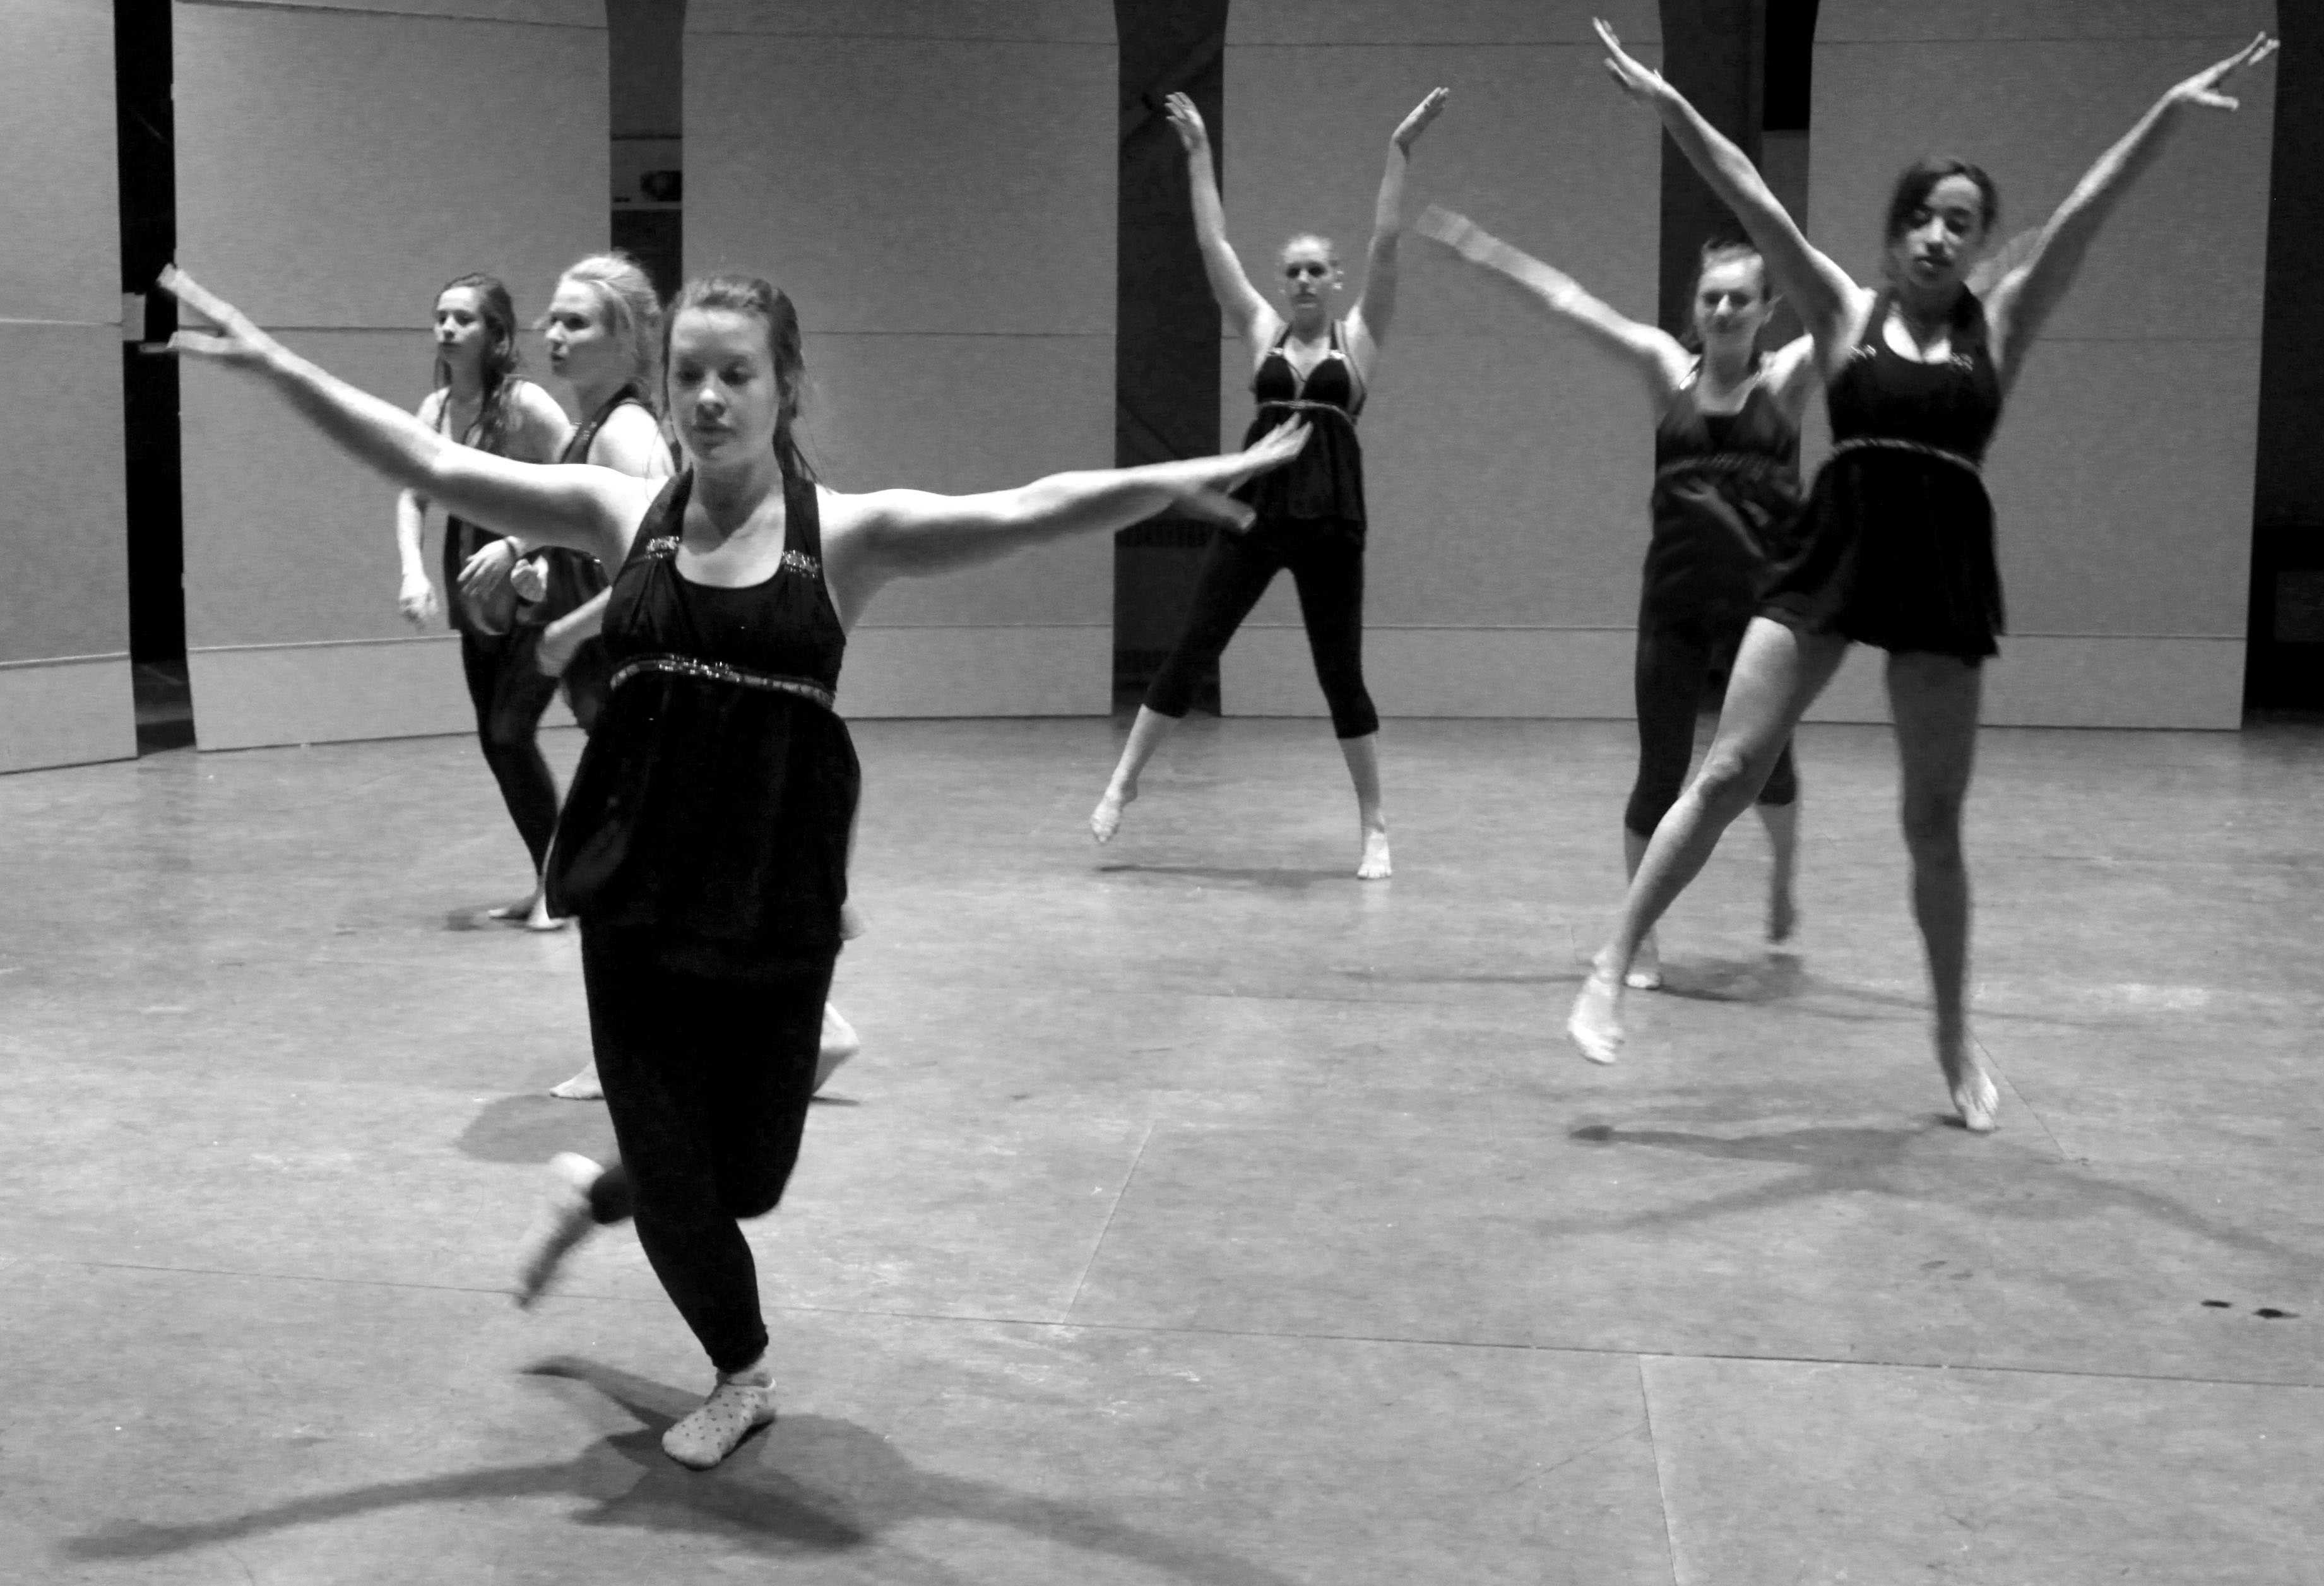 JaDE performers practice their dance for the benefit concert this Saturday March 28 at 7 p.m. in Shafer Auditorium. It is the 8th annual concert benefiting  the Crawford County Special Olympics.